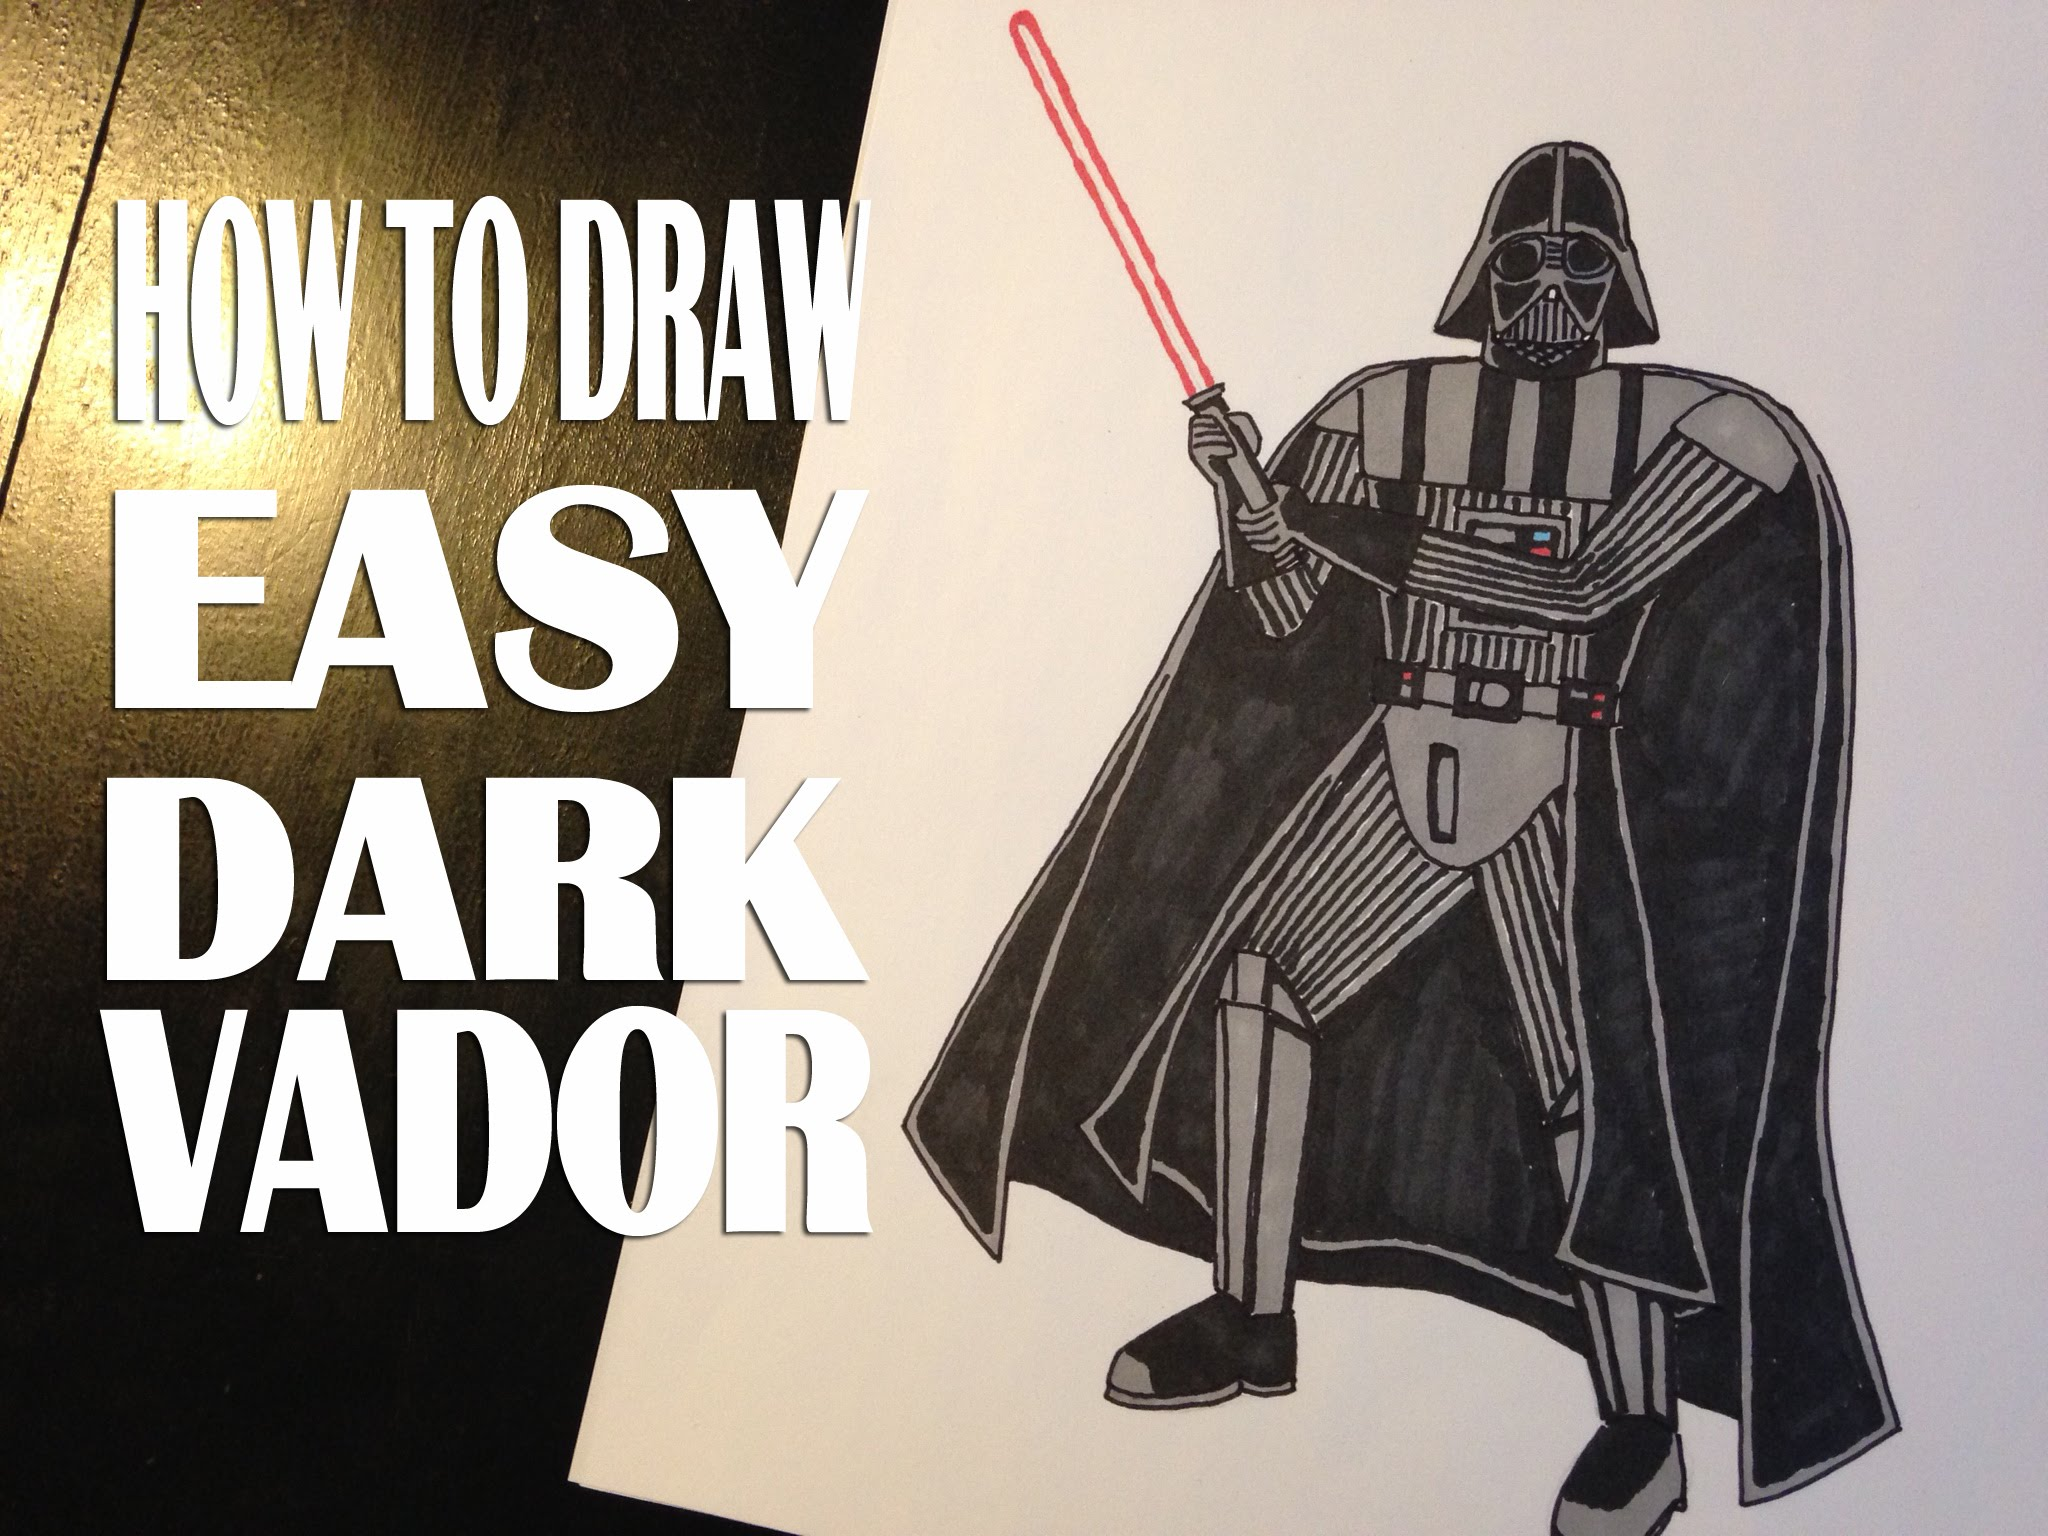 Darth vader clipart step by step. Star wars drawing at